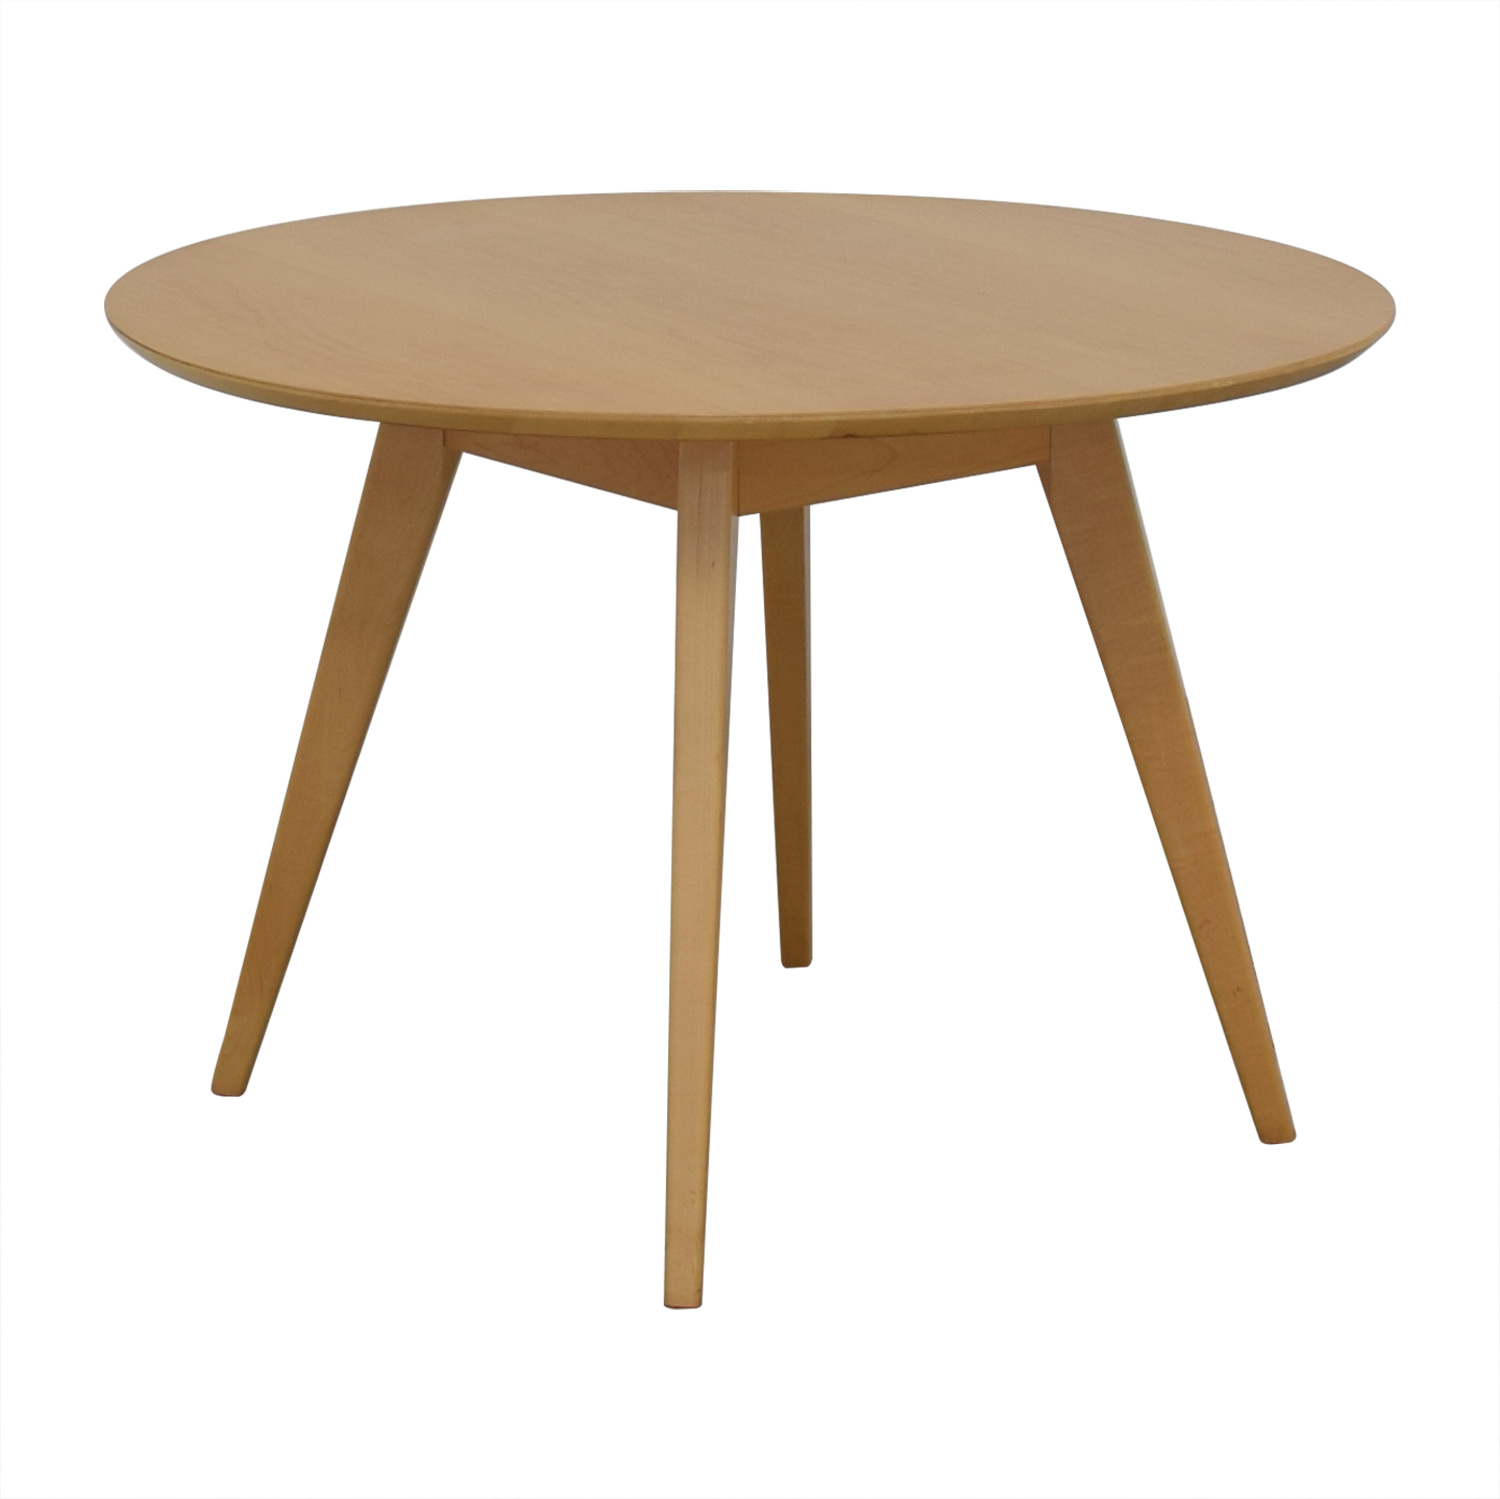 Design Within Reach Design Within Reach Risom Round Dining Table second hand